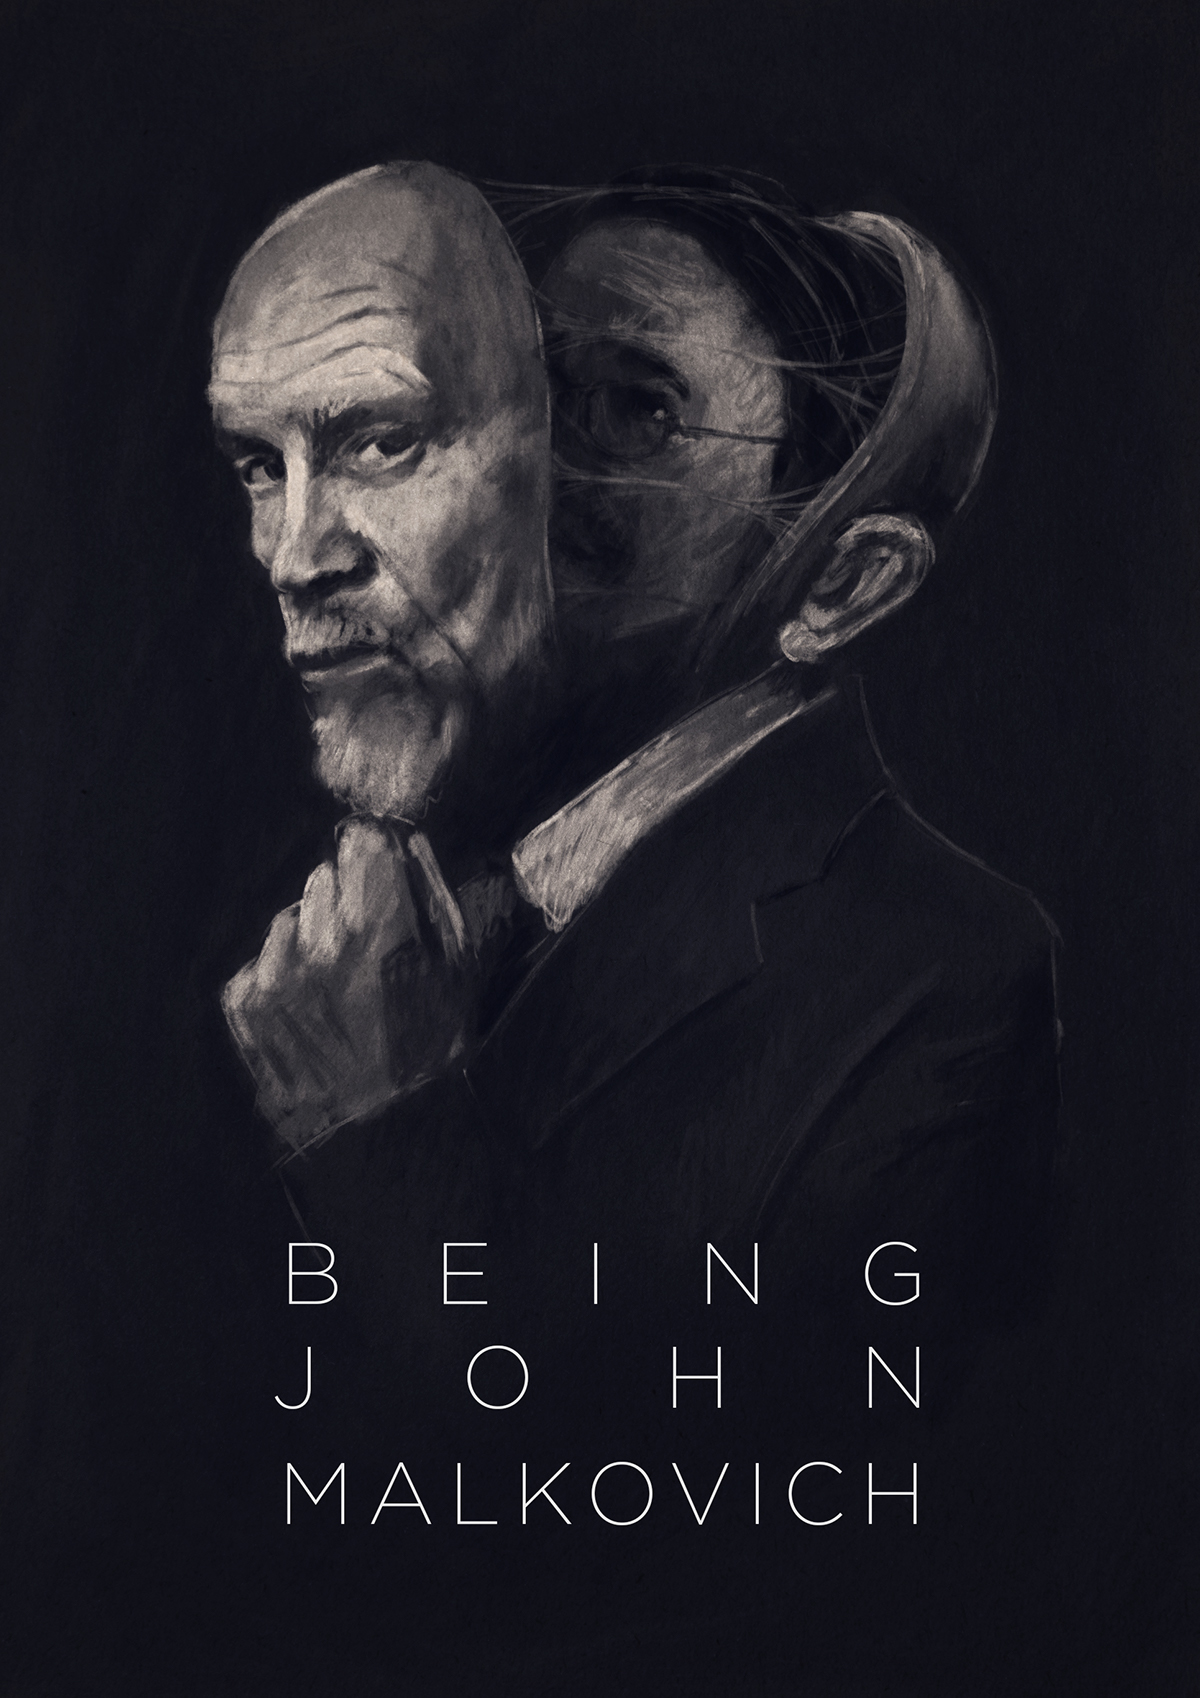 Being John Malkovich Poster Design on Behance